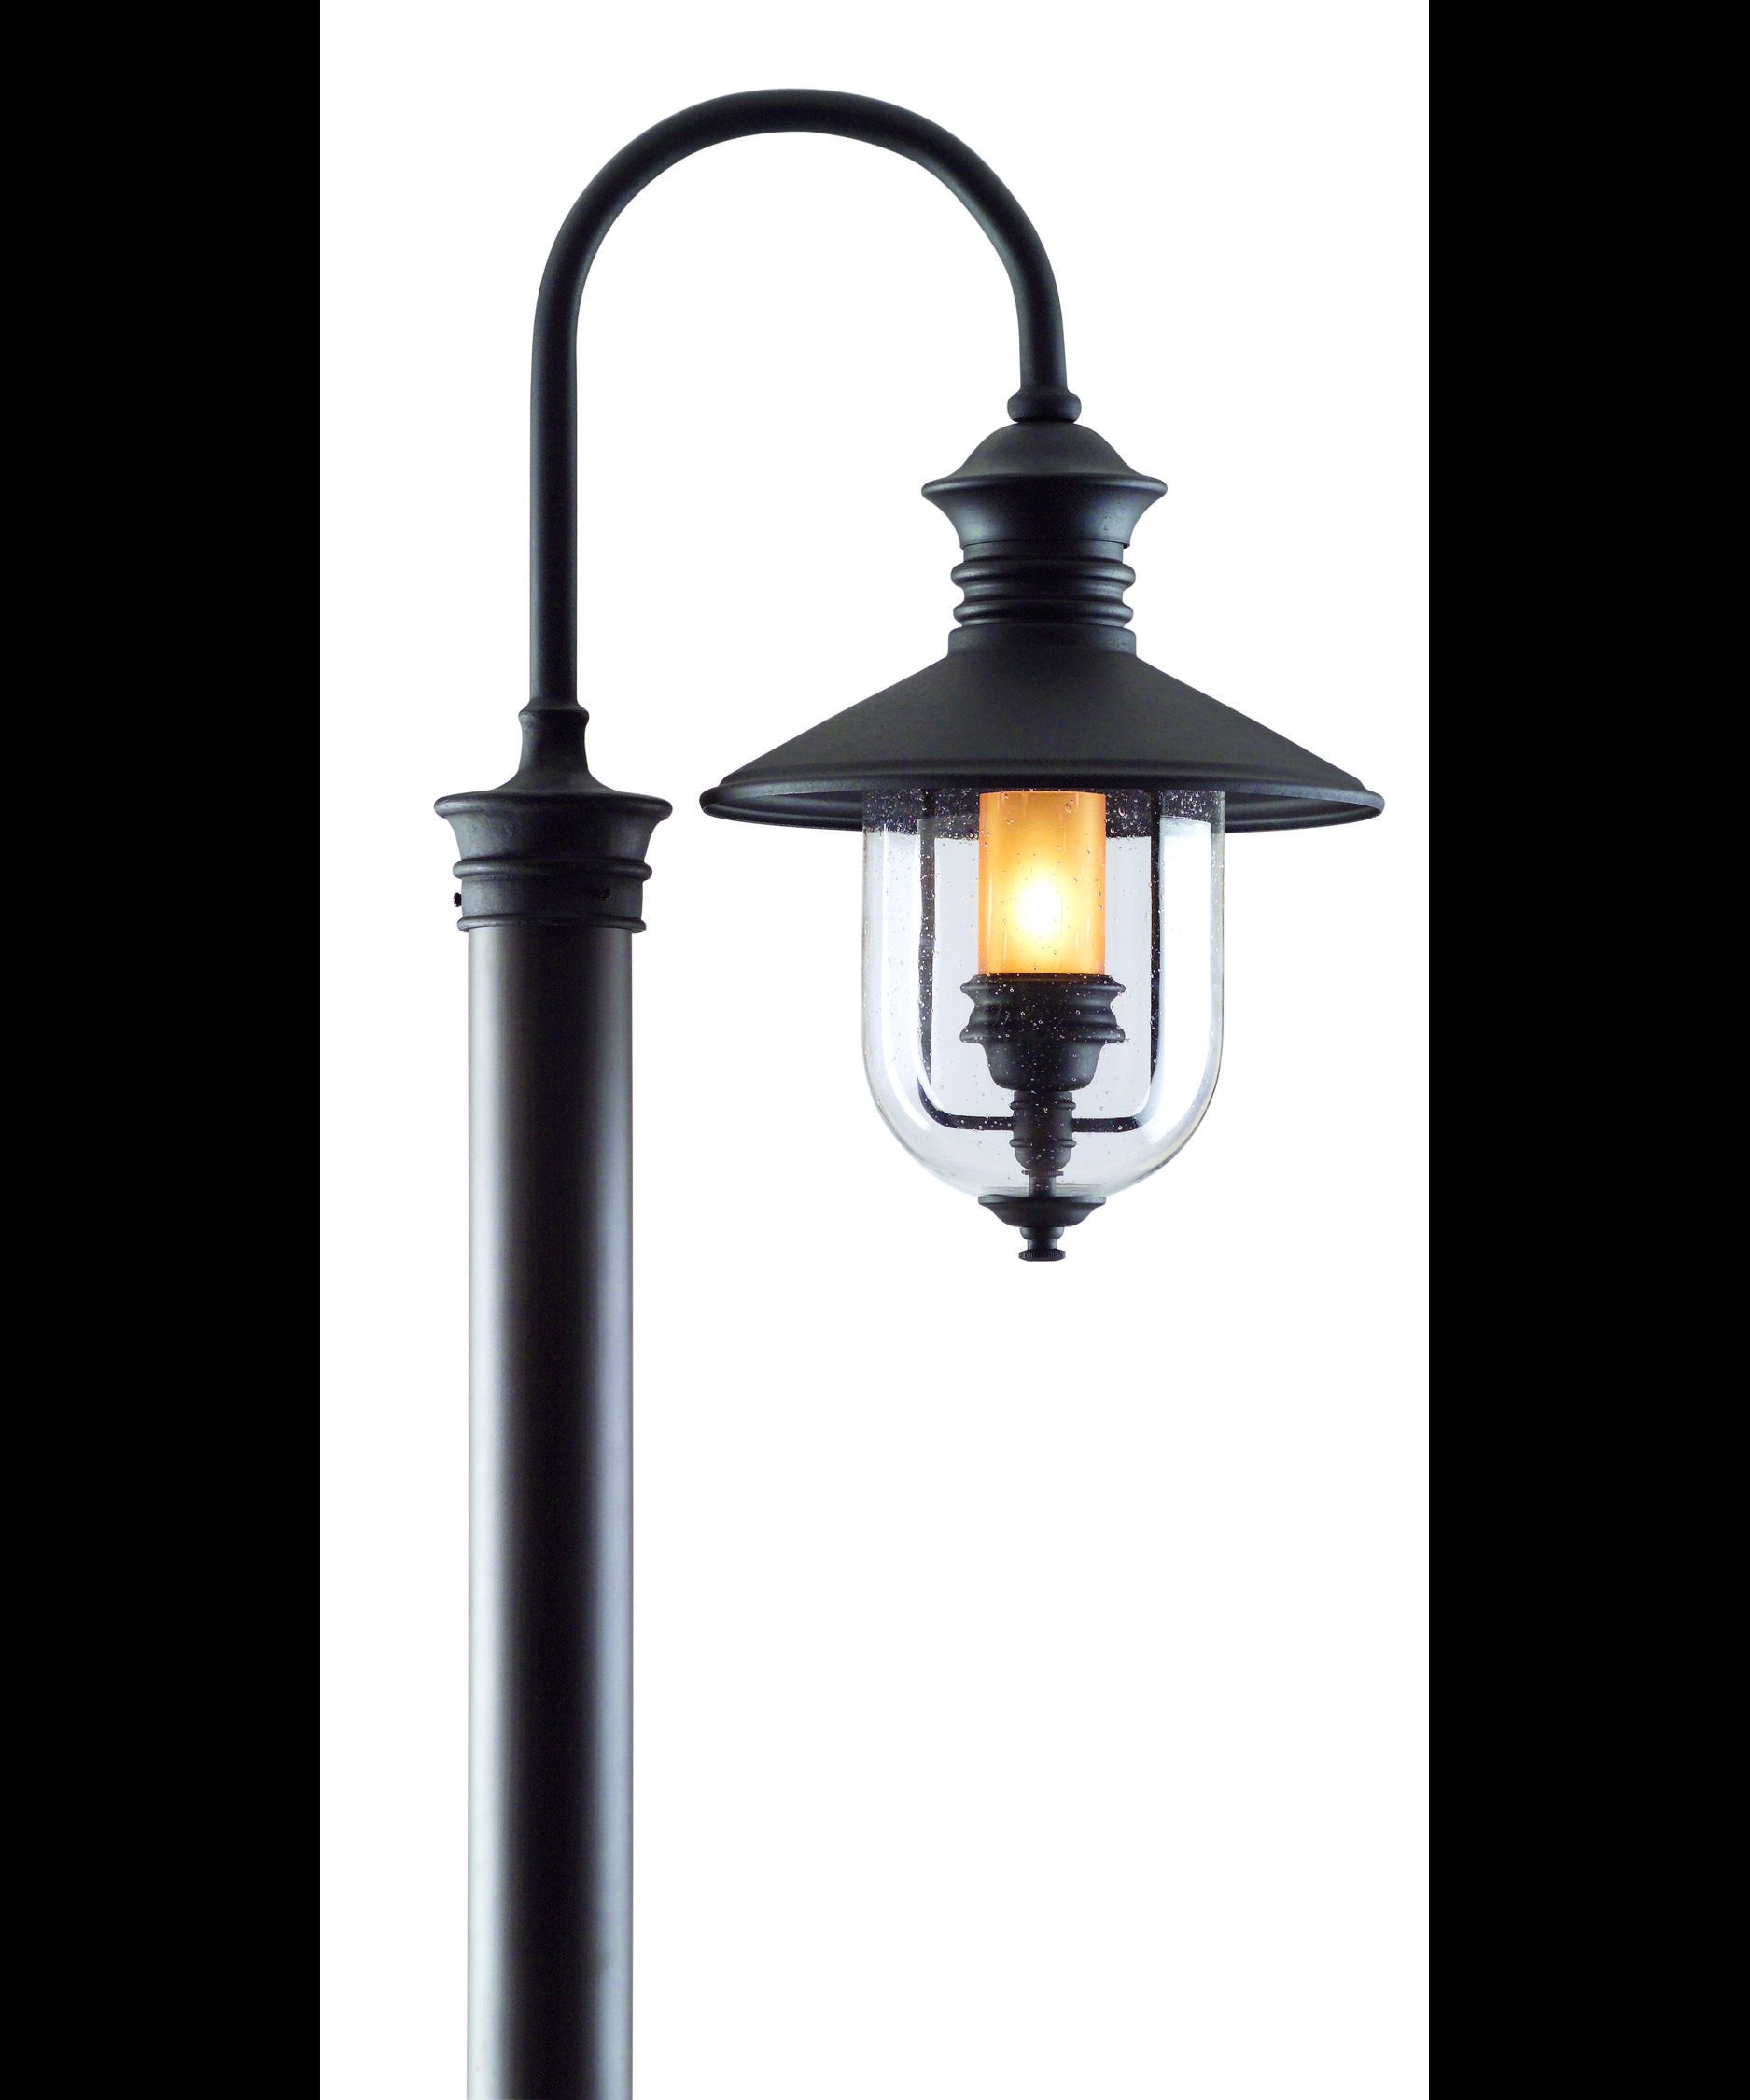 Troy Lighting P9364 Old Town 13 Inch Wide 1 Light Outdoor Post Lamp pertaining to Outdoor Lanterns for Posts (Image 18 of 20)